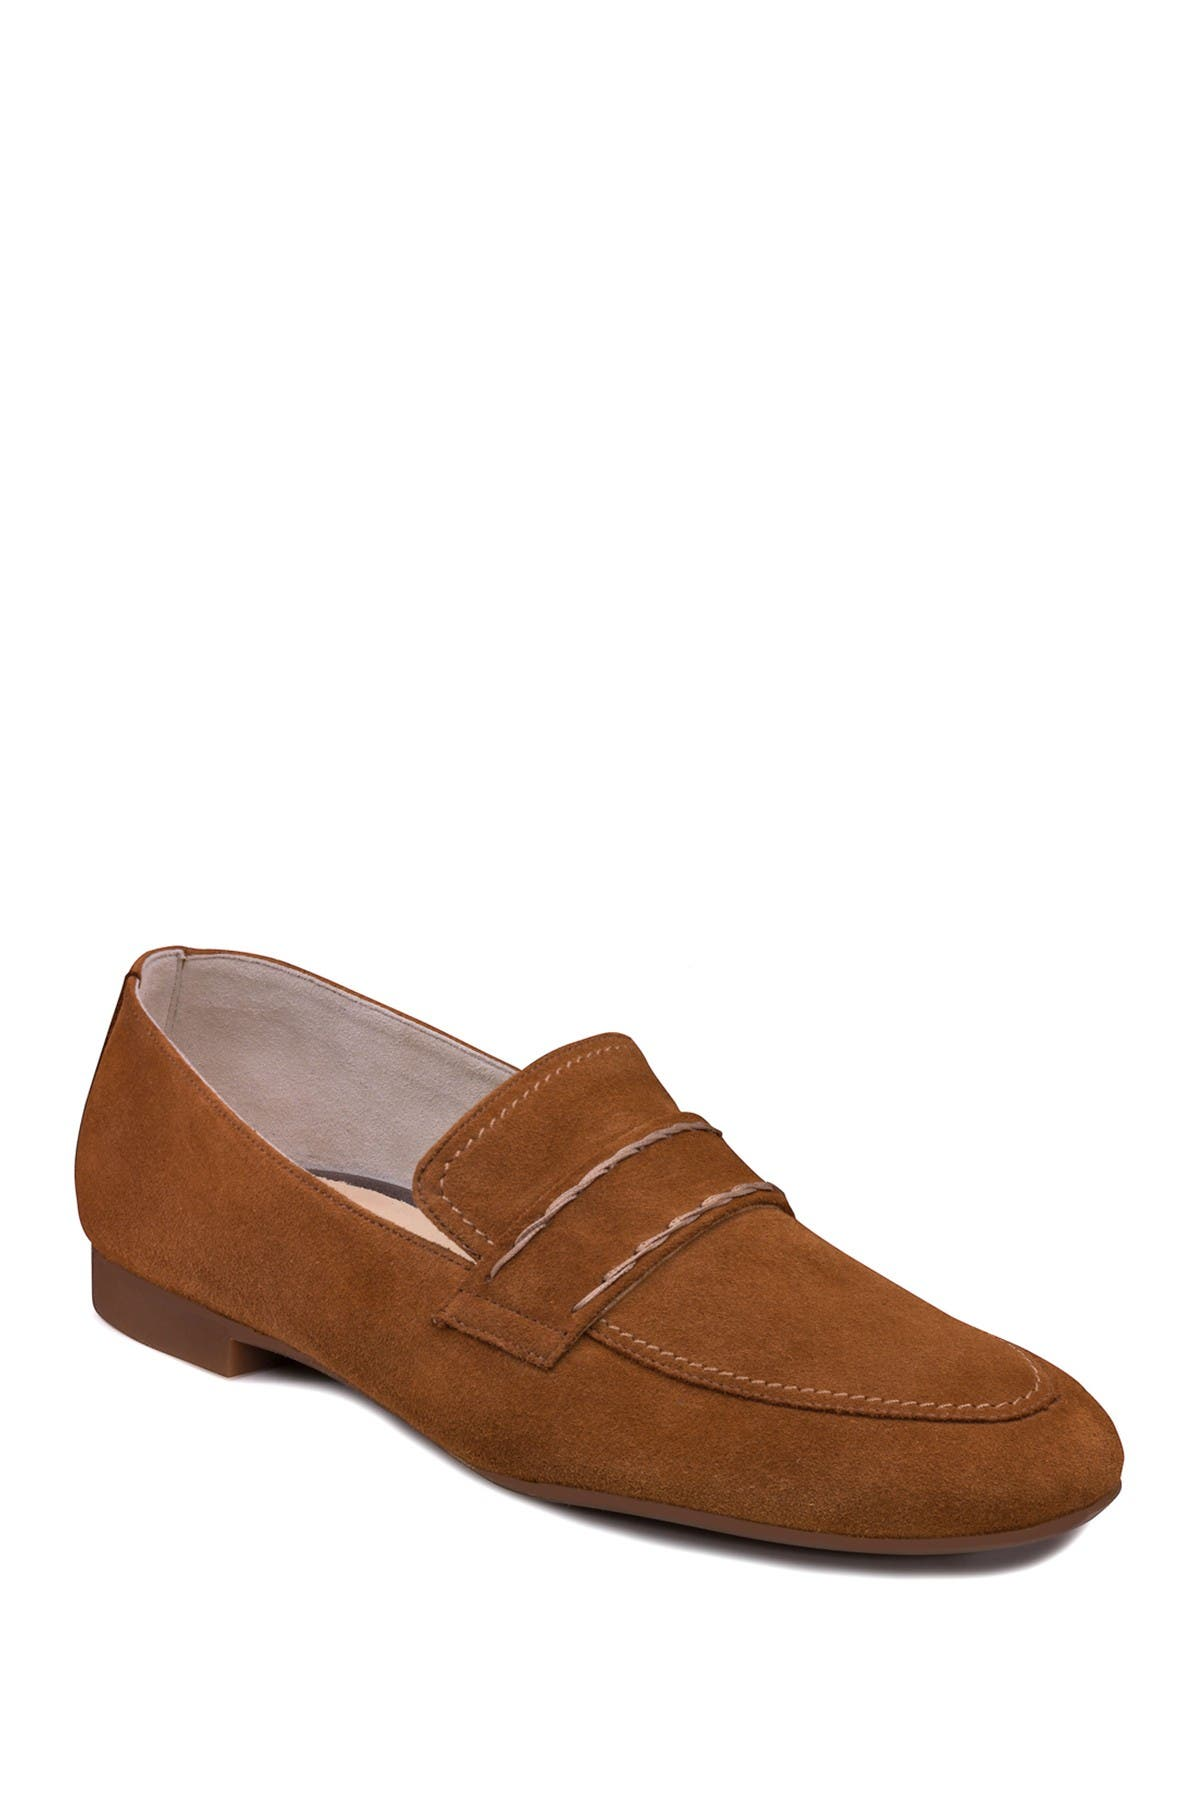 Image of Paul Green R2504 Suede Loafer